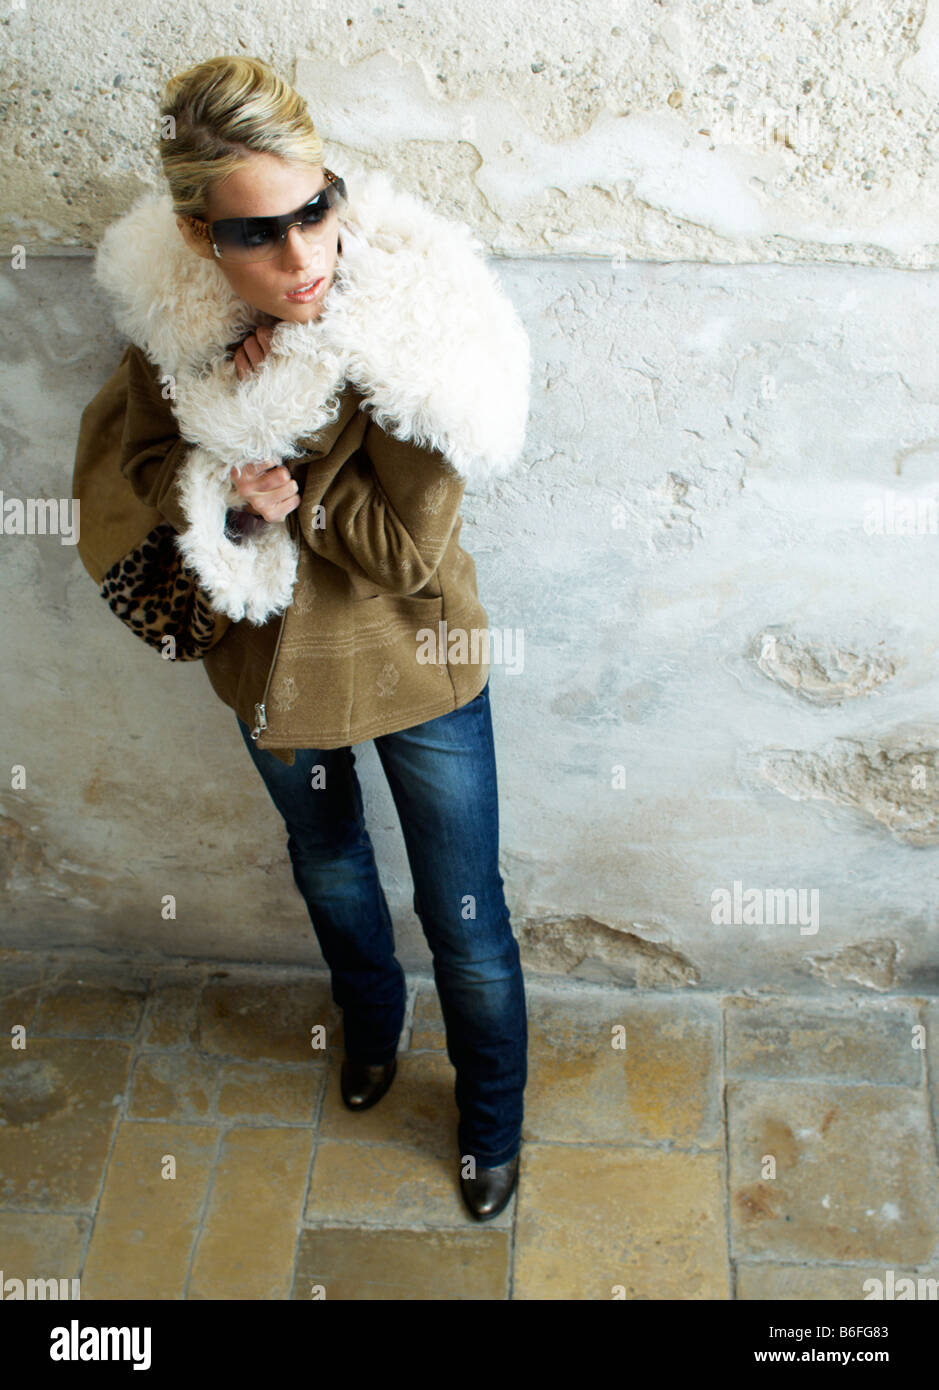 Young woman wearing a winter jacket standing in a stairwell - Stock Image